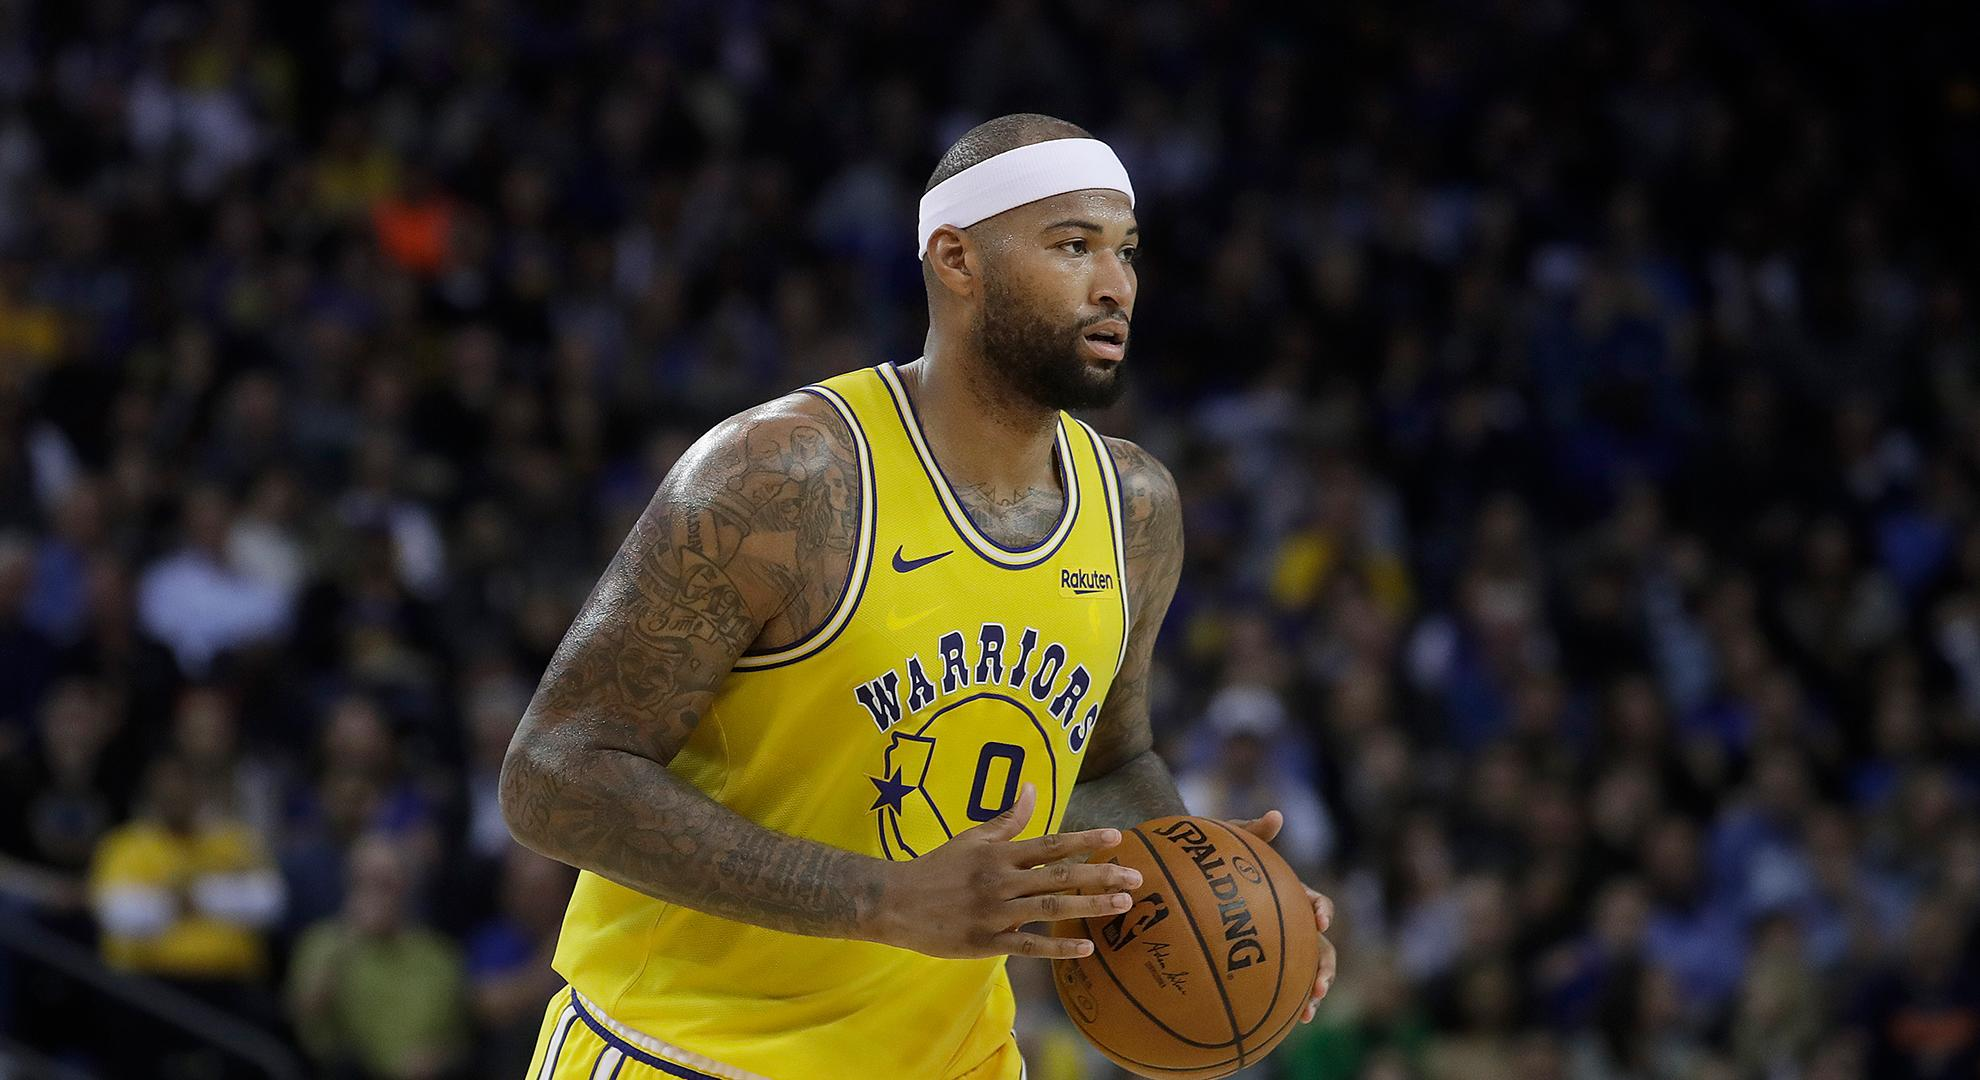 NBA rumors: Executives doubt DeMarcus Cousins will land contract he wants